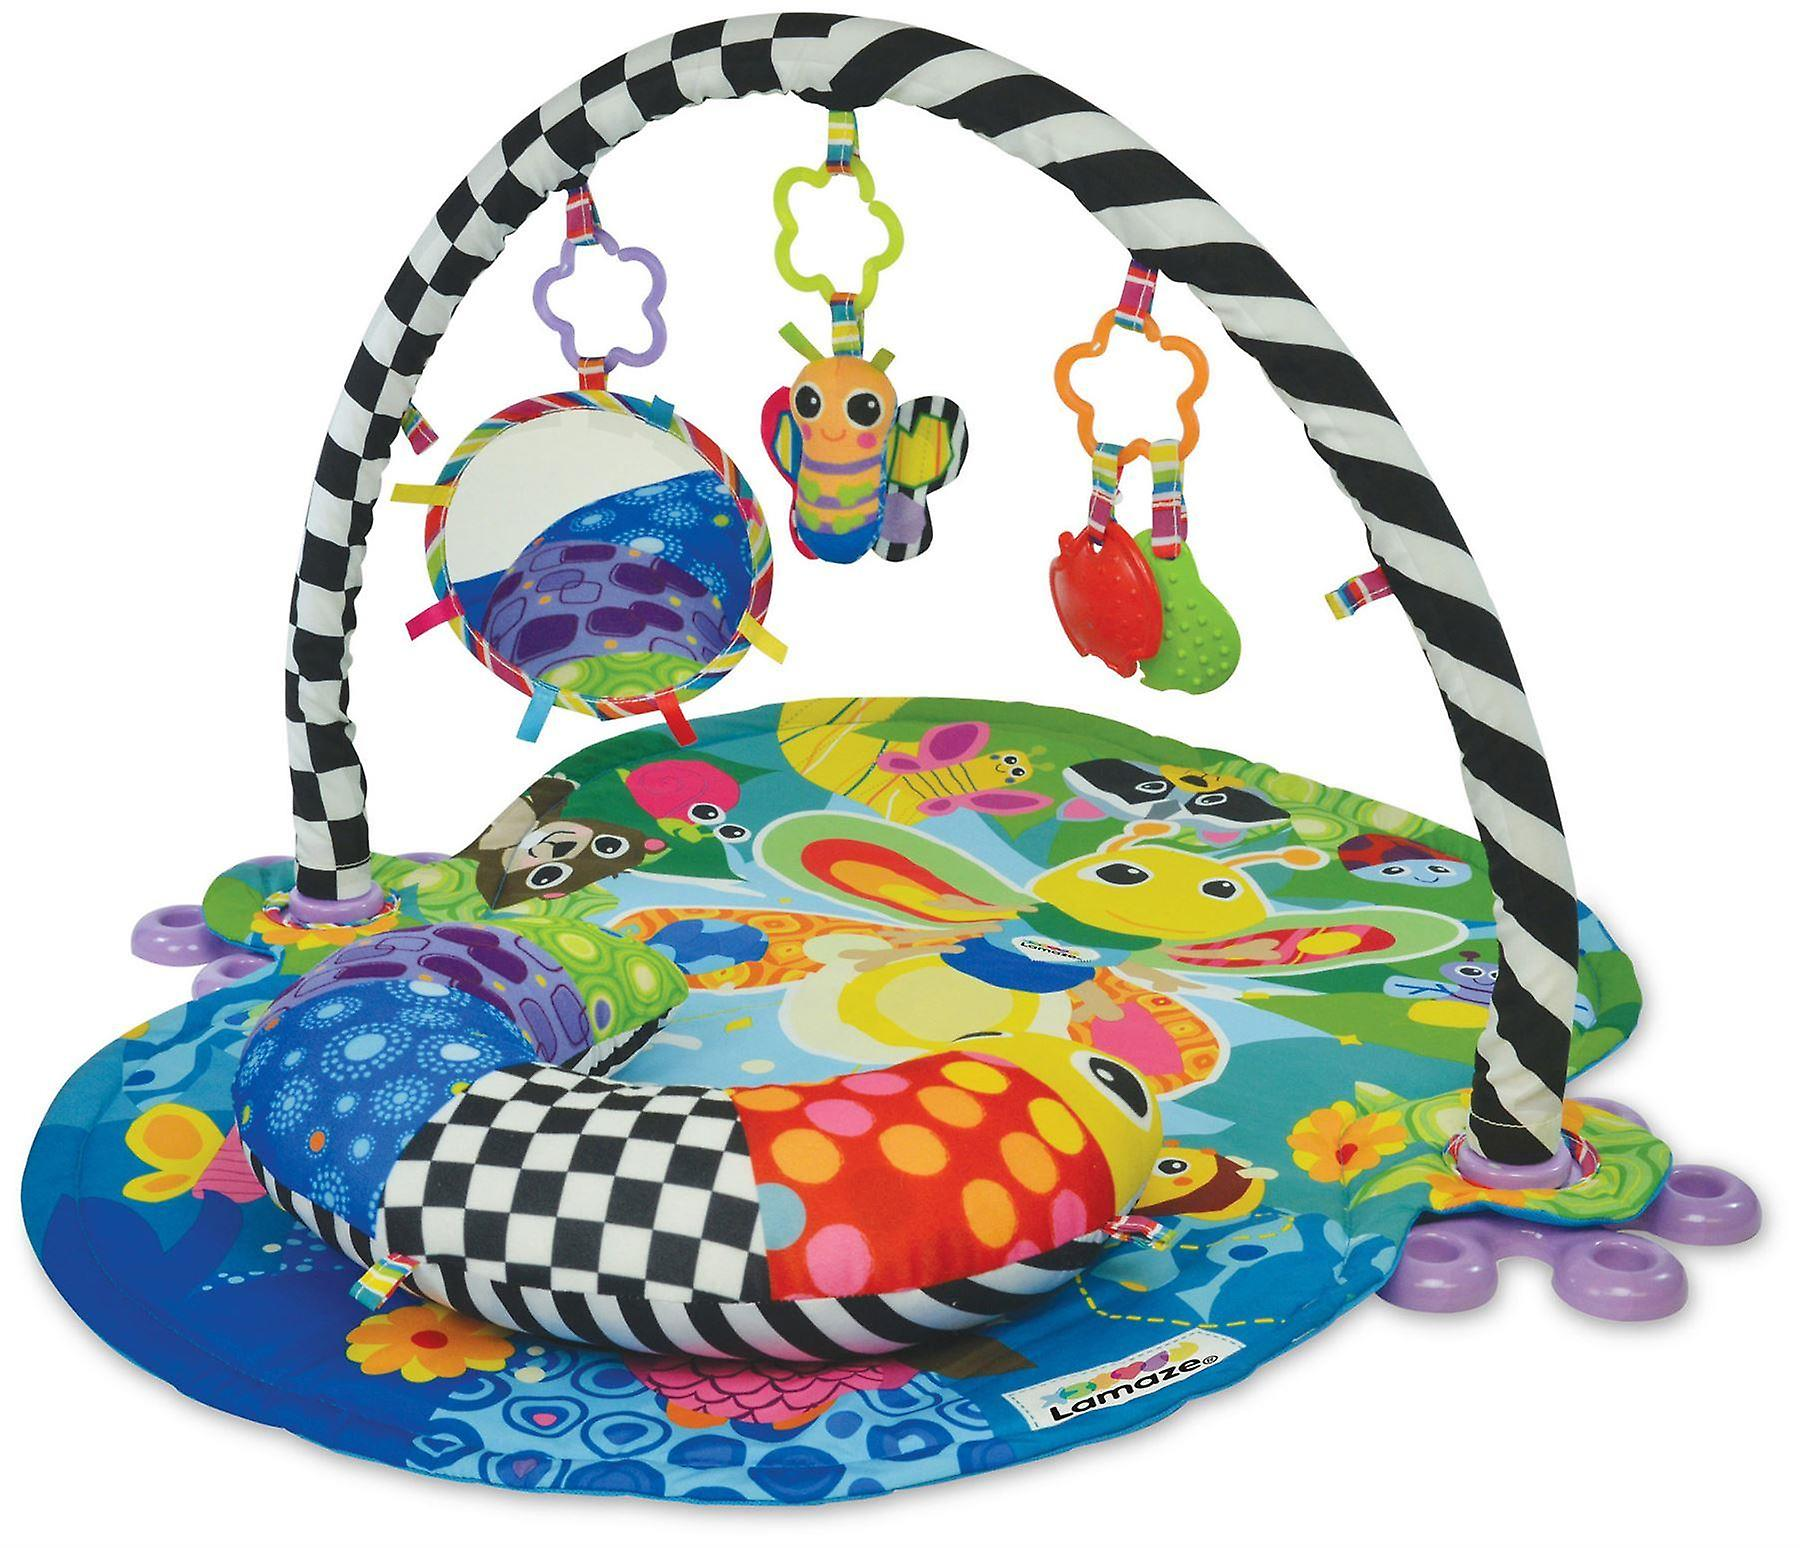 Lamaze Frougedie The Firefly Gym